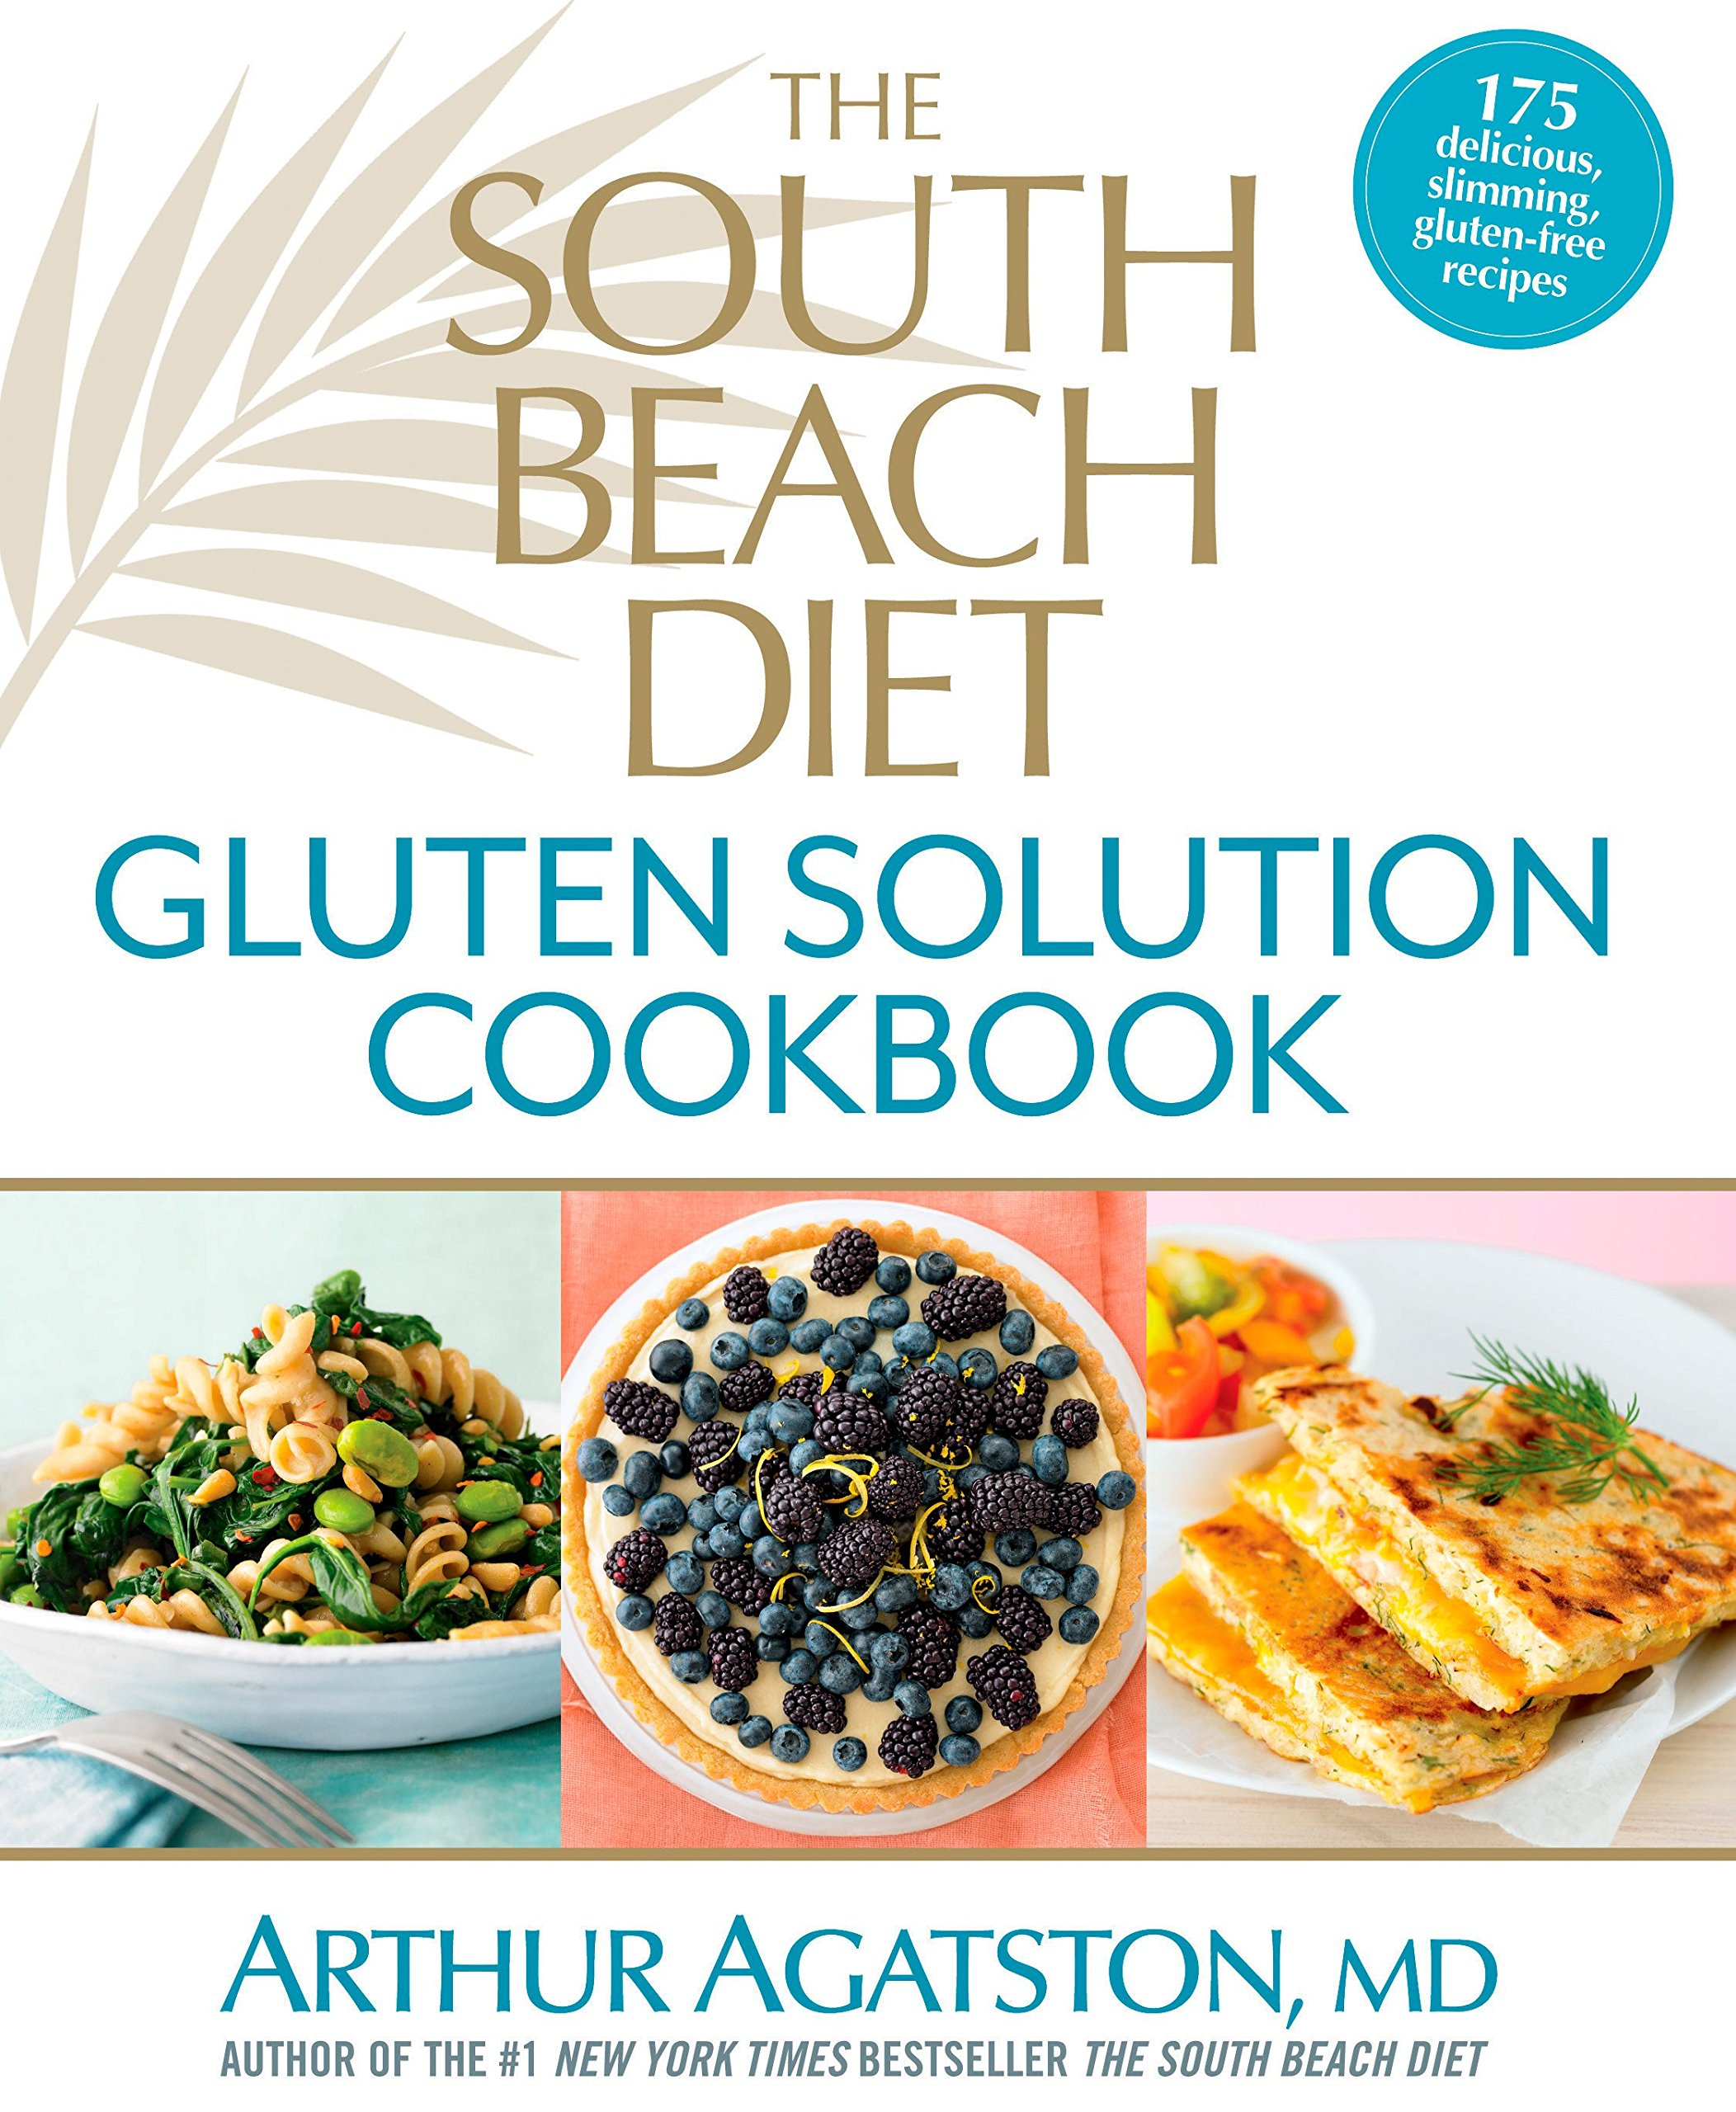 The South Beach Diet Gluten Solution Cookbook: 175 Delicious, Slimming, Gluten-Free Recipes by Brand: Rodale Books